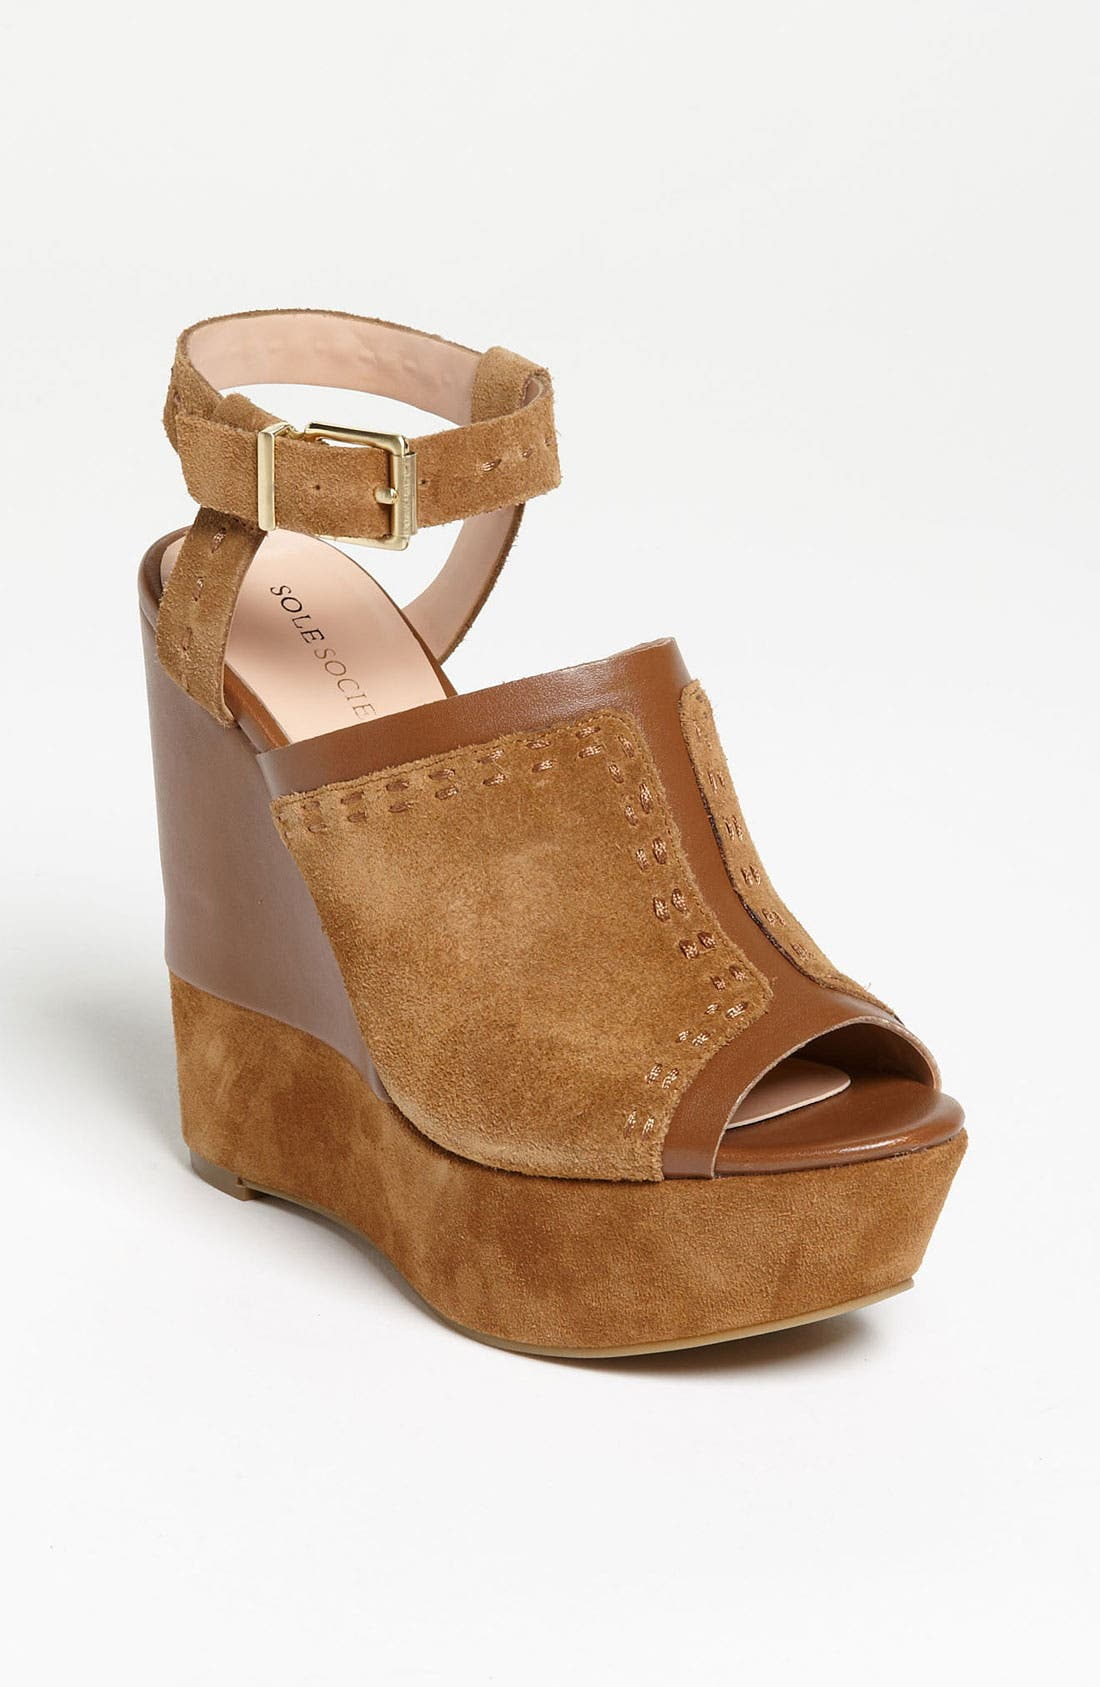 Alternate Image 1 Selected - Sole Society 'Daniella' Wedge